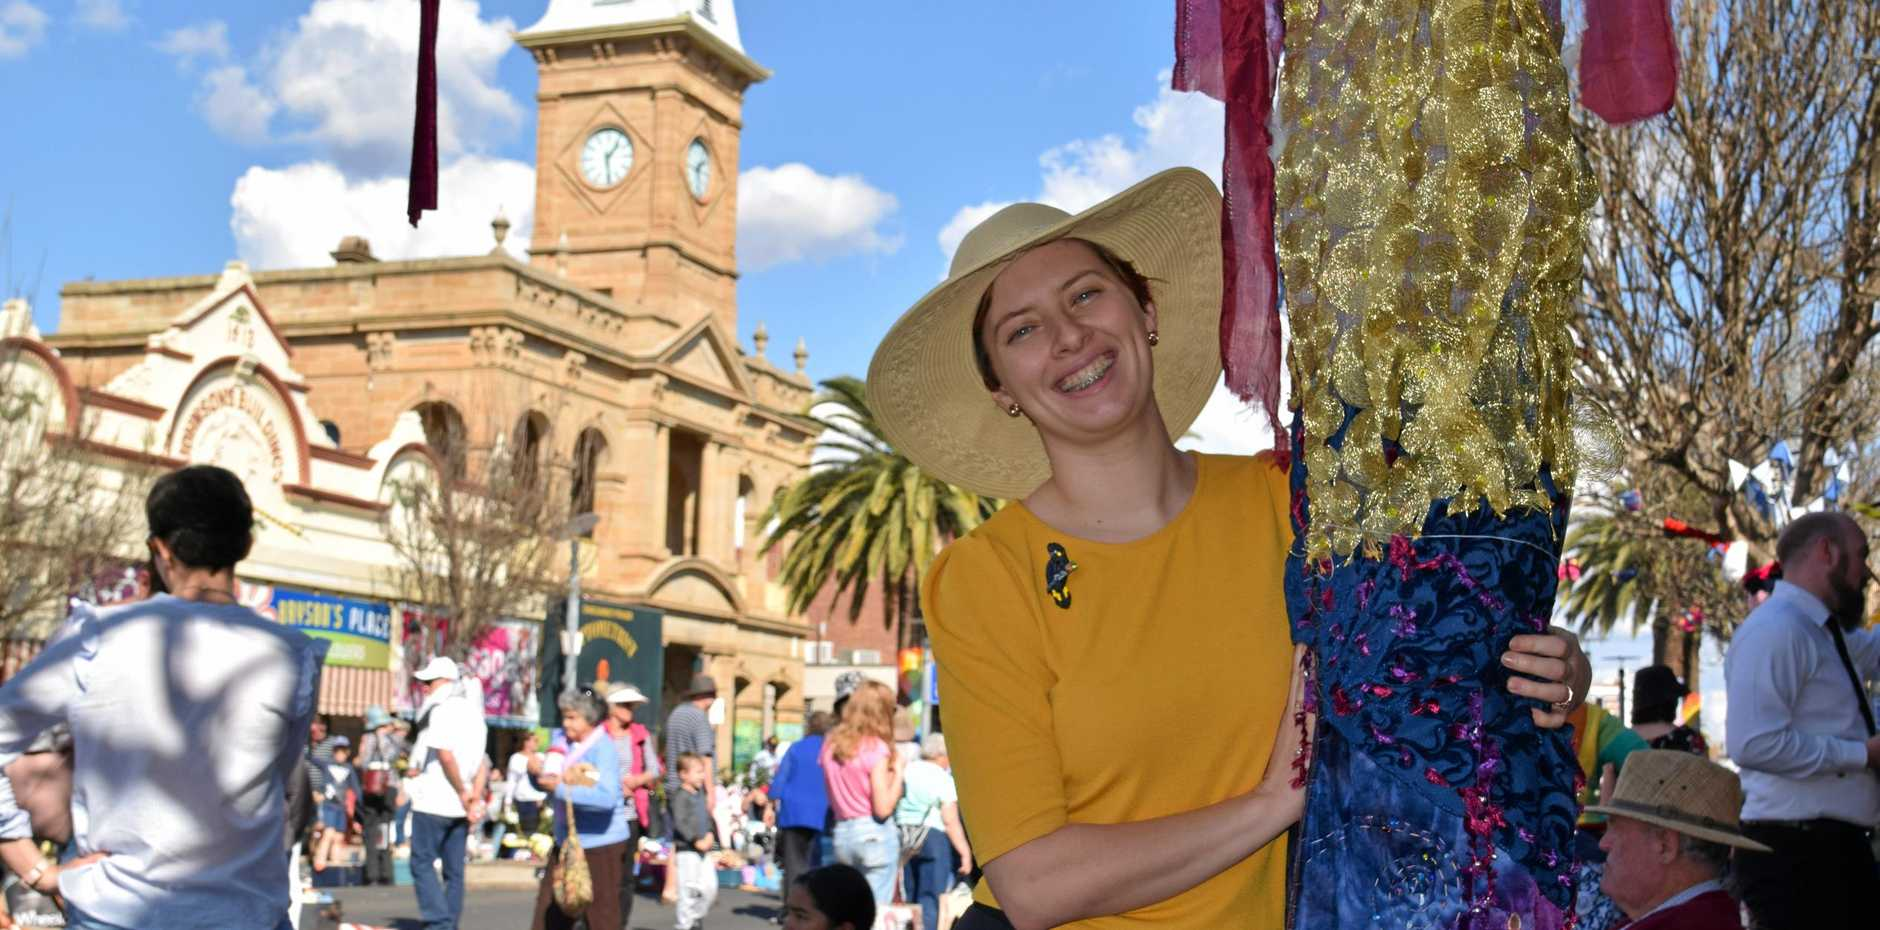 Former Warwick woman Brearne Barnes has created a special jumper for this year's festival.